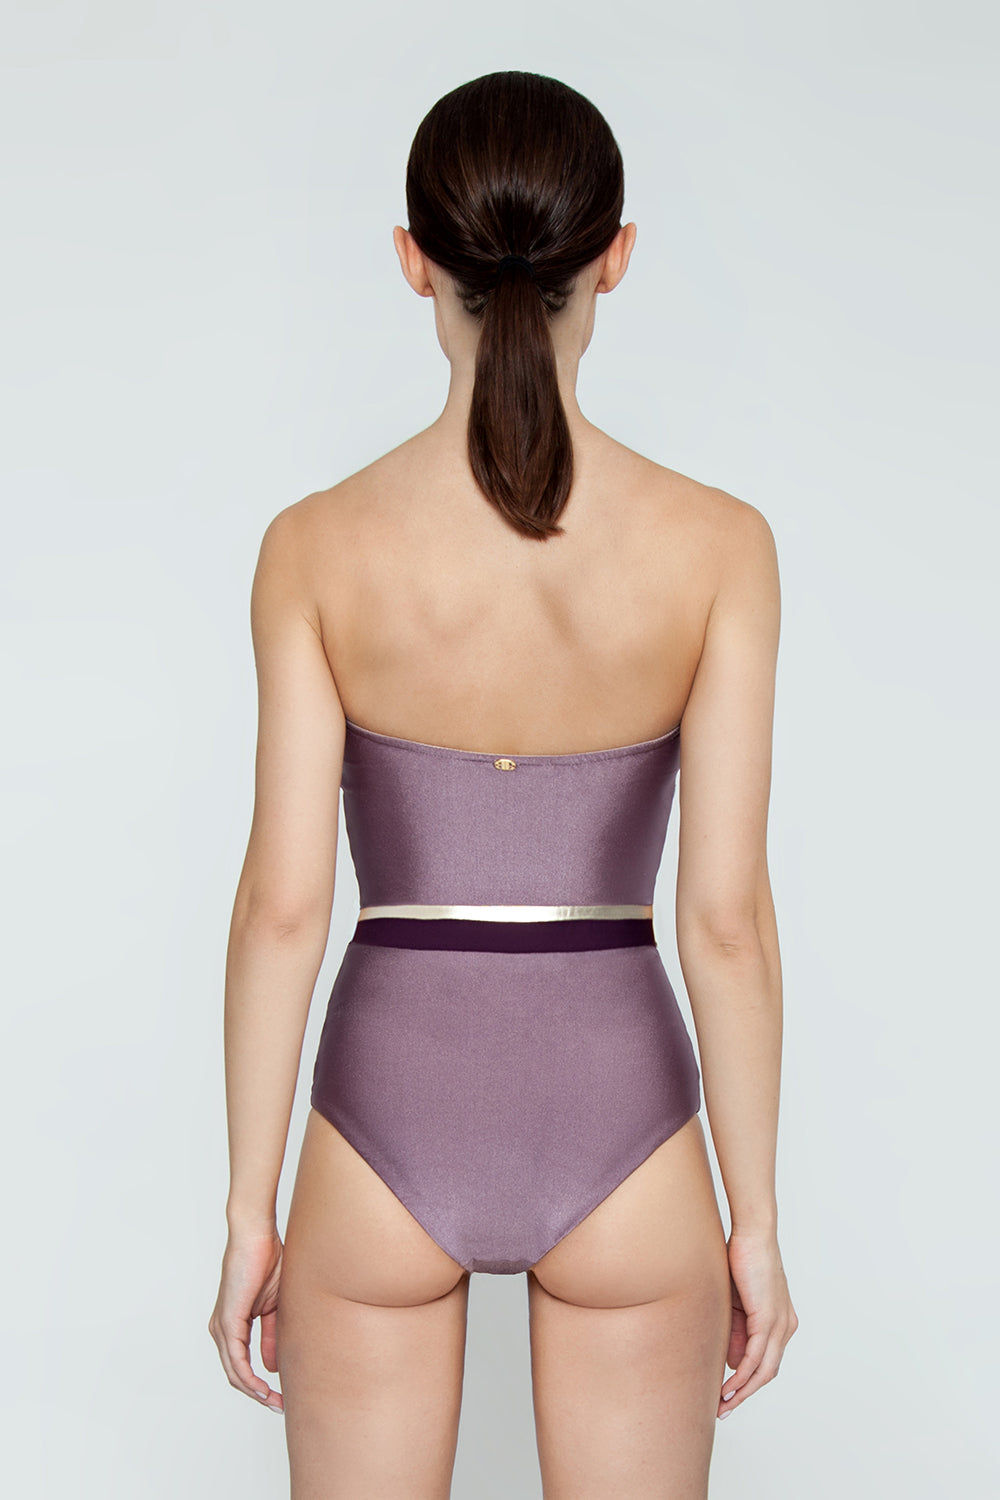 ADRIANA DEGREAS Strapless One Piece Swimsuit - Tricolor Lilac/Purple/Gold One Piece | Tricolor Lilac/Purple/Gold| Adriana Degreas Tricolor Strapless One Piece Swimsuit - Lilac/Purple/Gold Strapless one piece  Metallic tricolor center band detail  Full coverage Back View